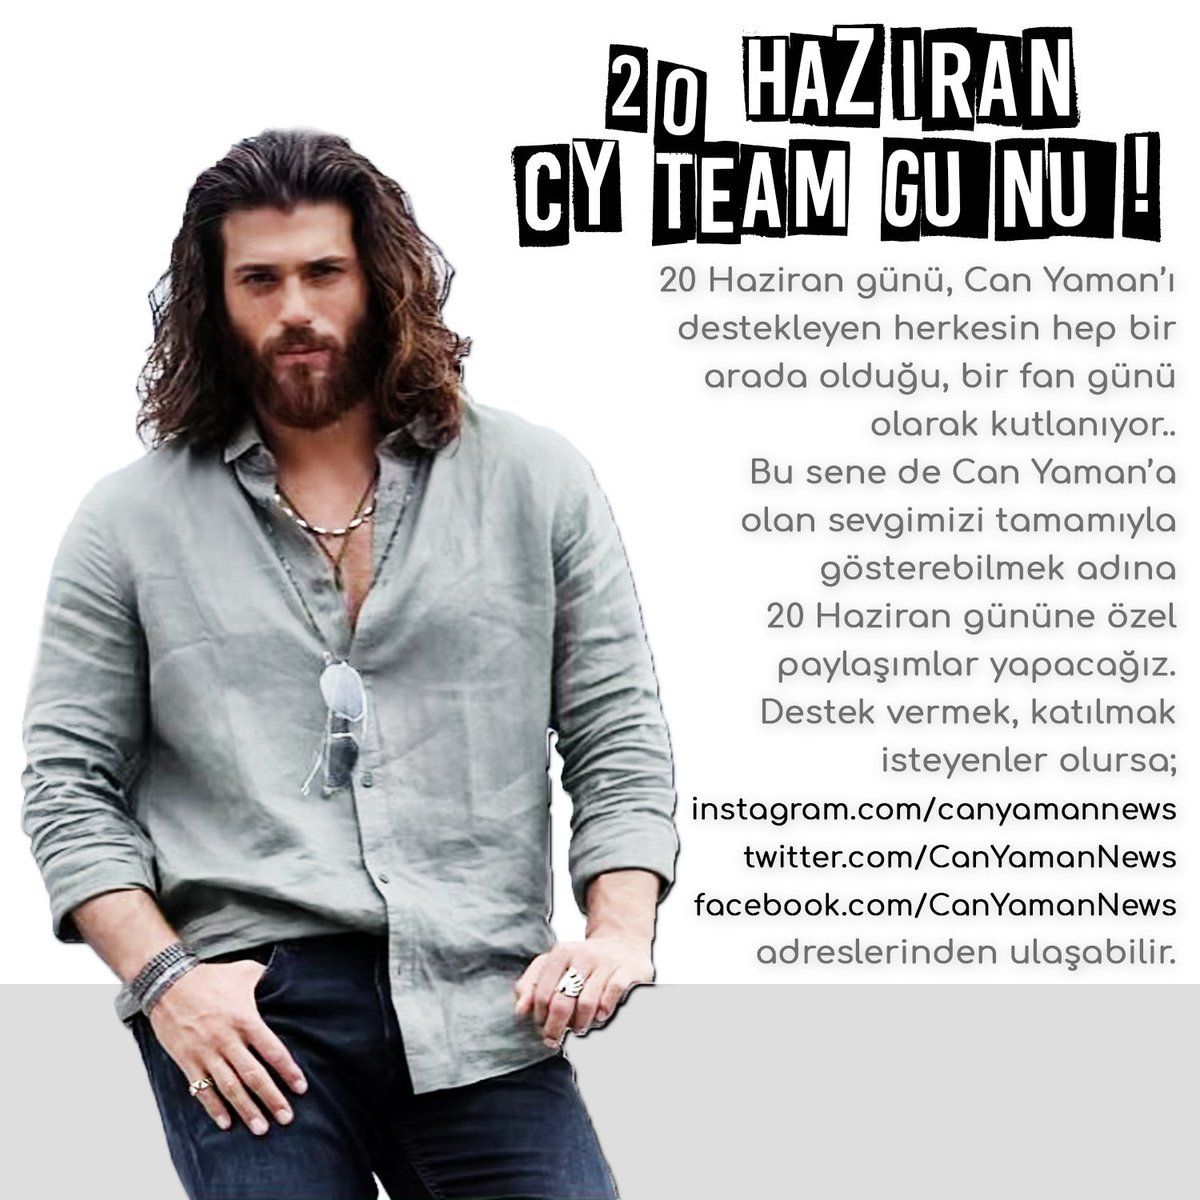 Can Yaman News Instagram - 167 86 90 163